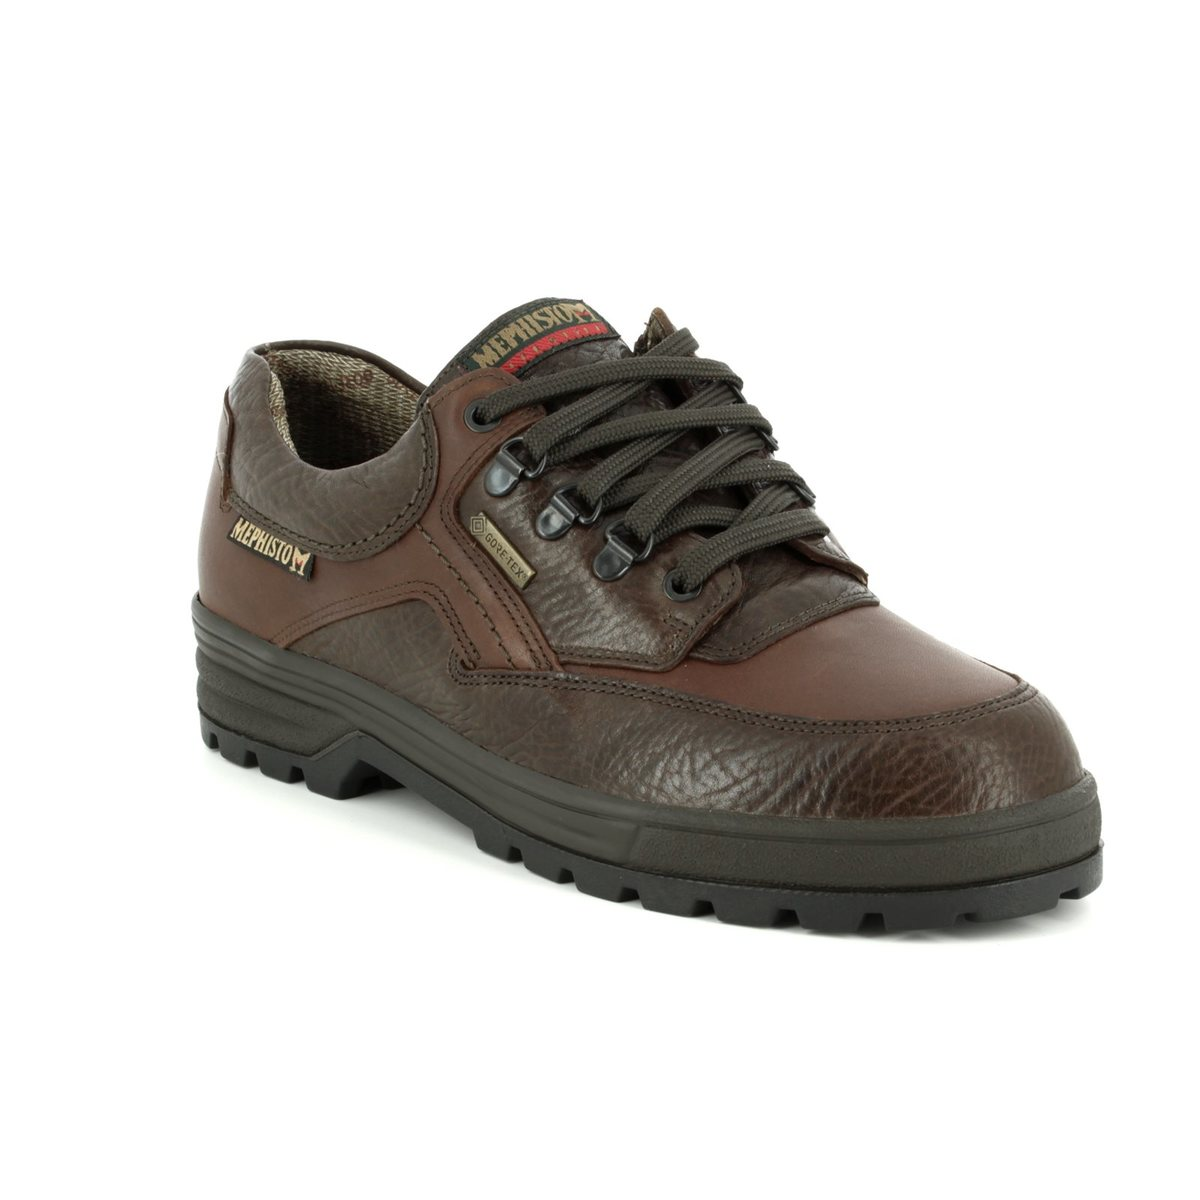 a6228fd53a Mephisto Casual Shoes - Dark brown - B818C85/751 BARRACUDA GORE-TEX